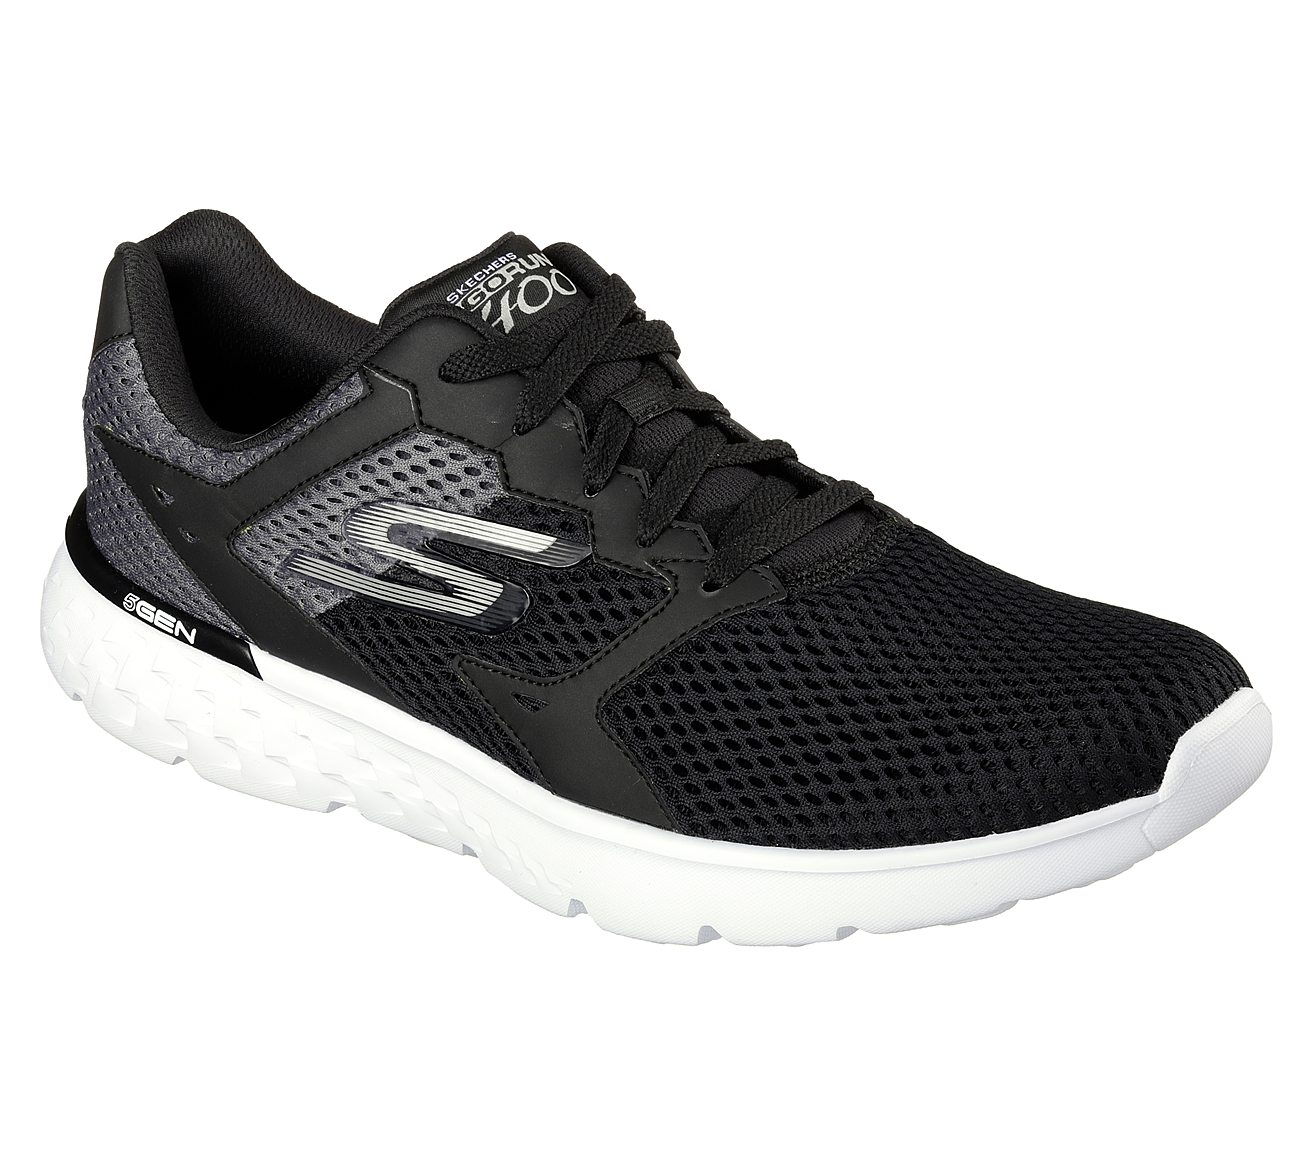 Skechers GOrun 400 Skechers Performance